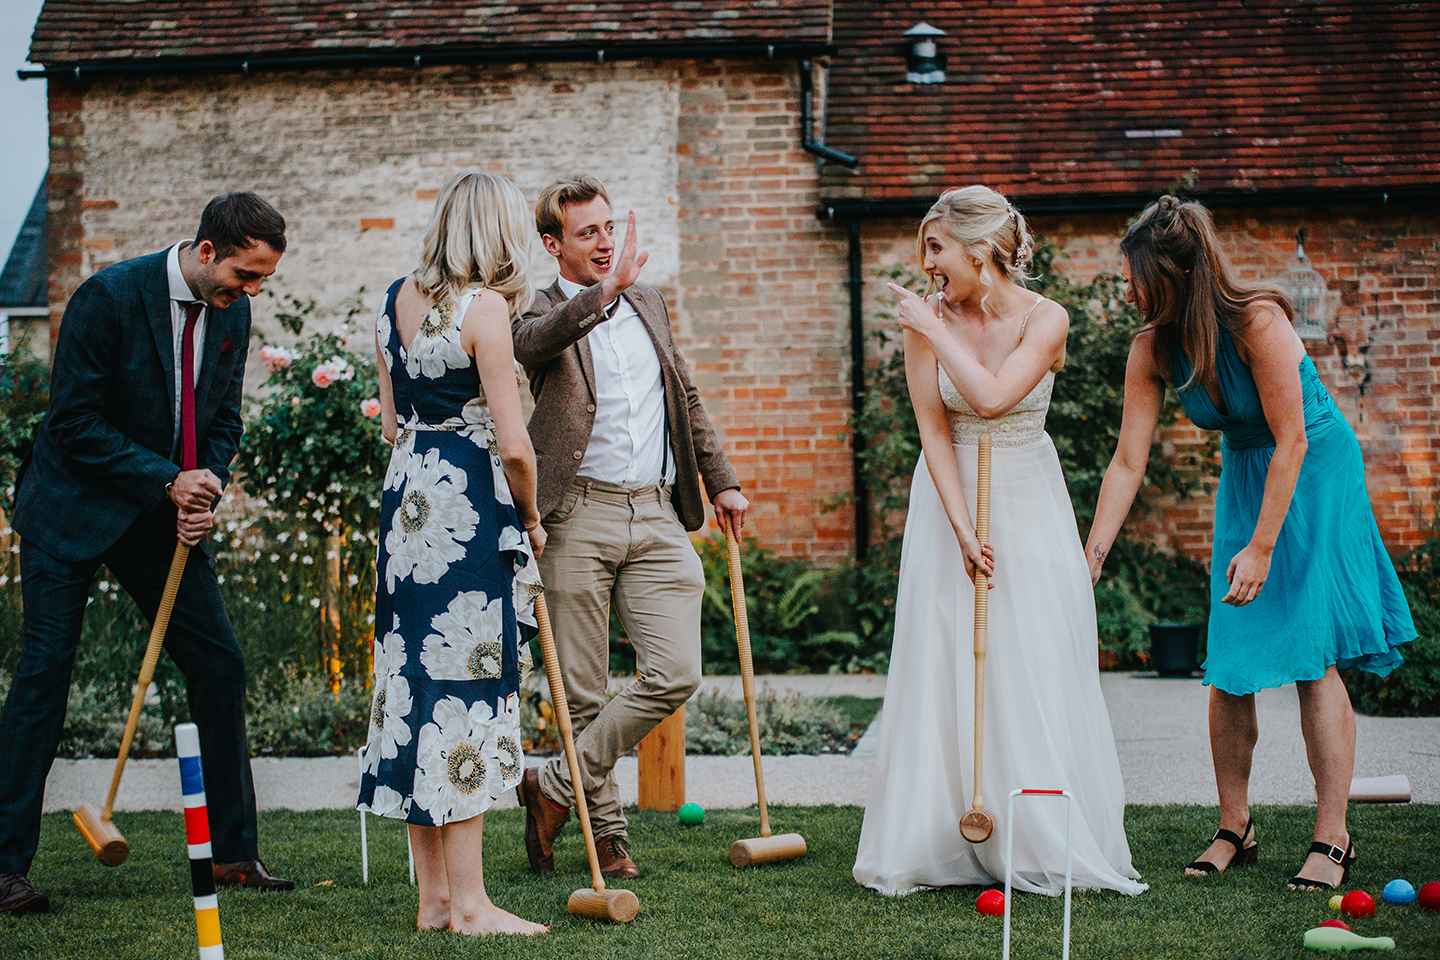 Guests play garden games during a spring wedding reception at Bassmead Manor Barns